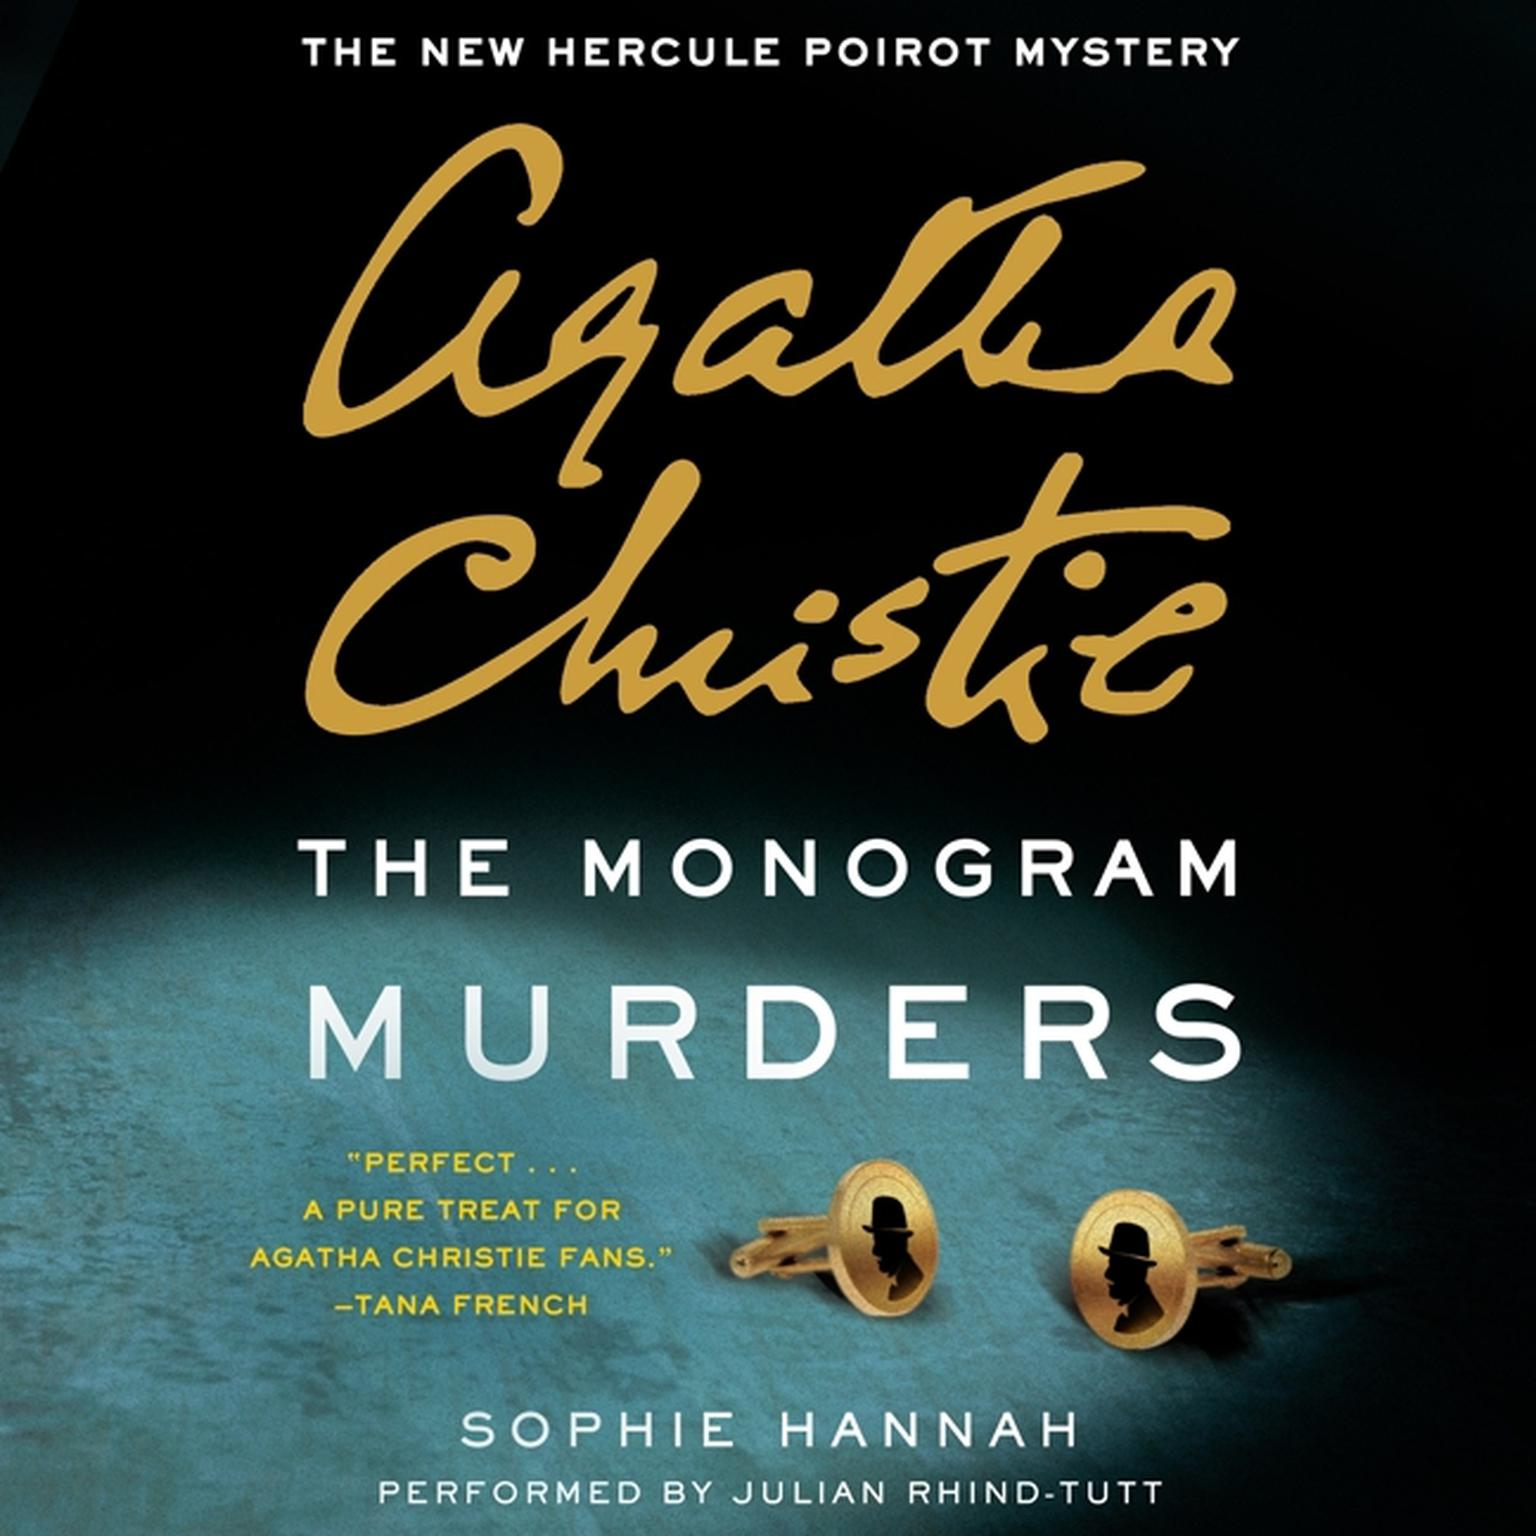 Printable The Monogram Murders: The New Hercule Poirot Mystery Audiobook Cover Art